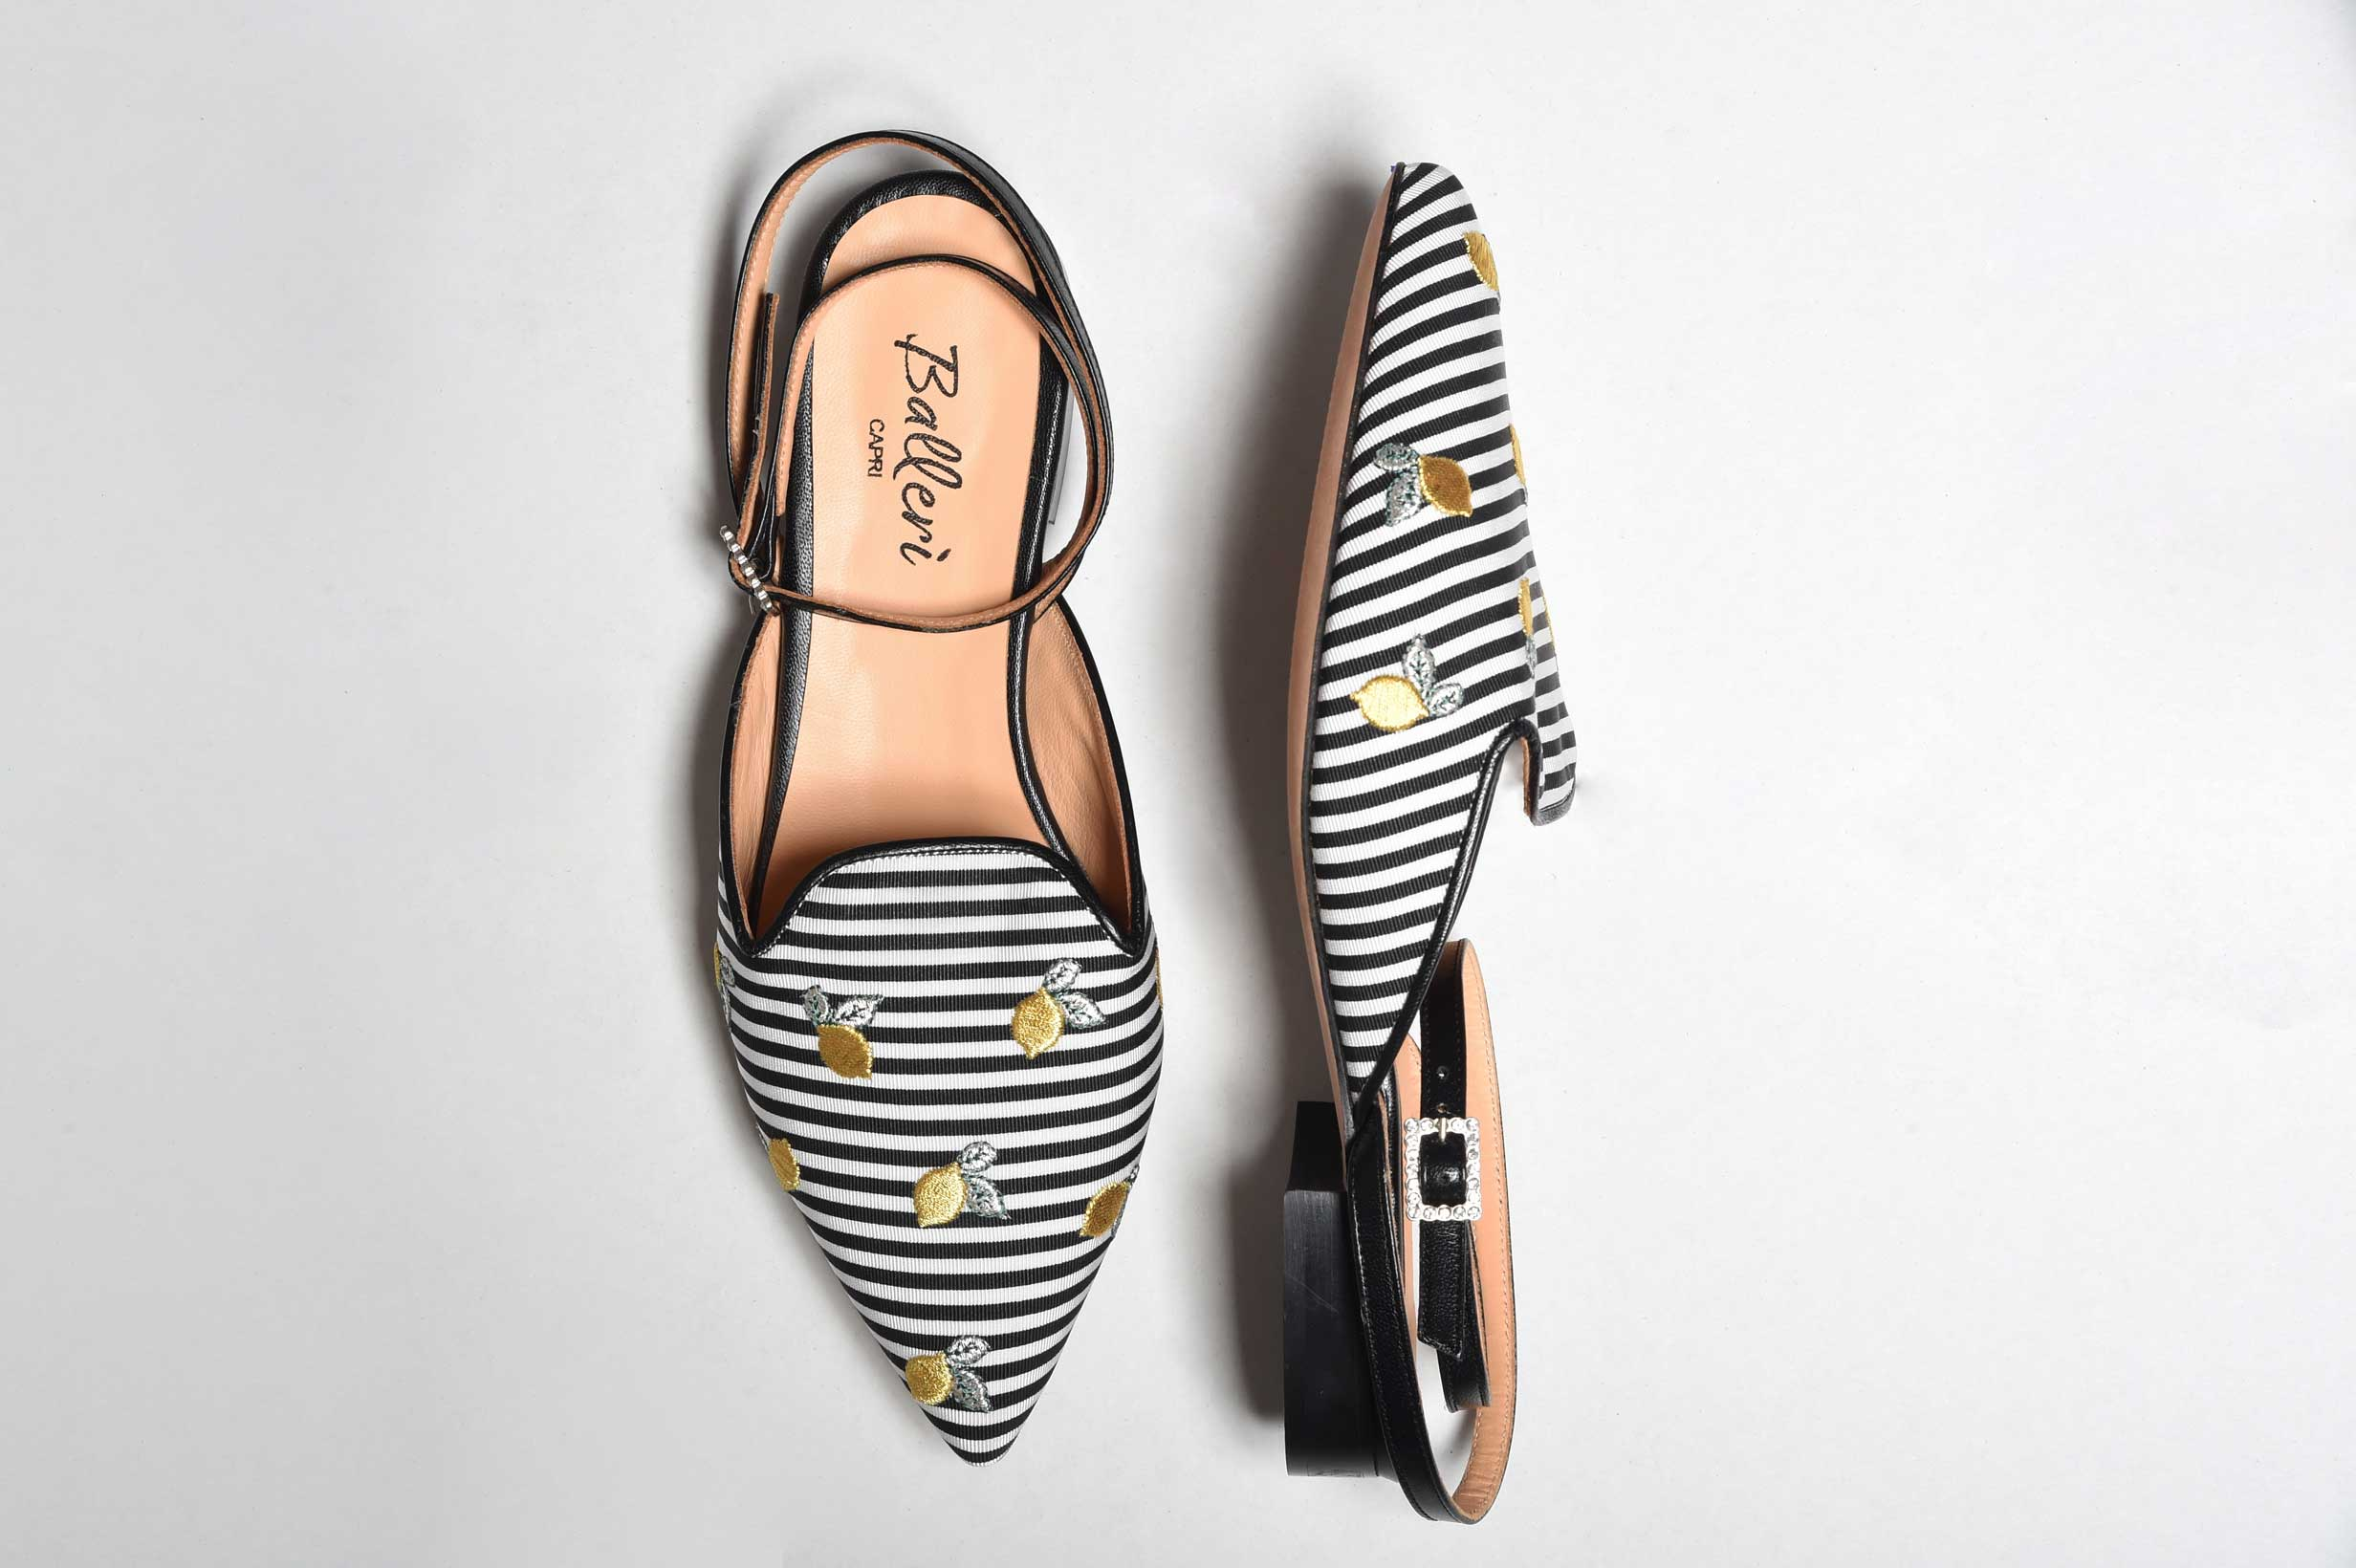 Exclusive Capri Collection - Slipper Audry Righe Nere